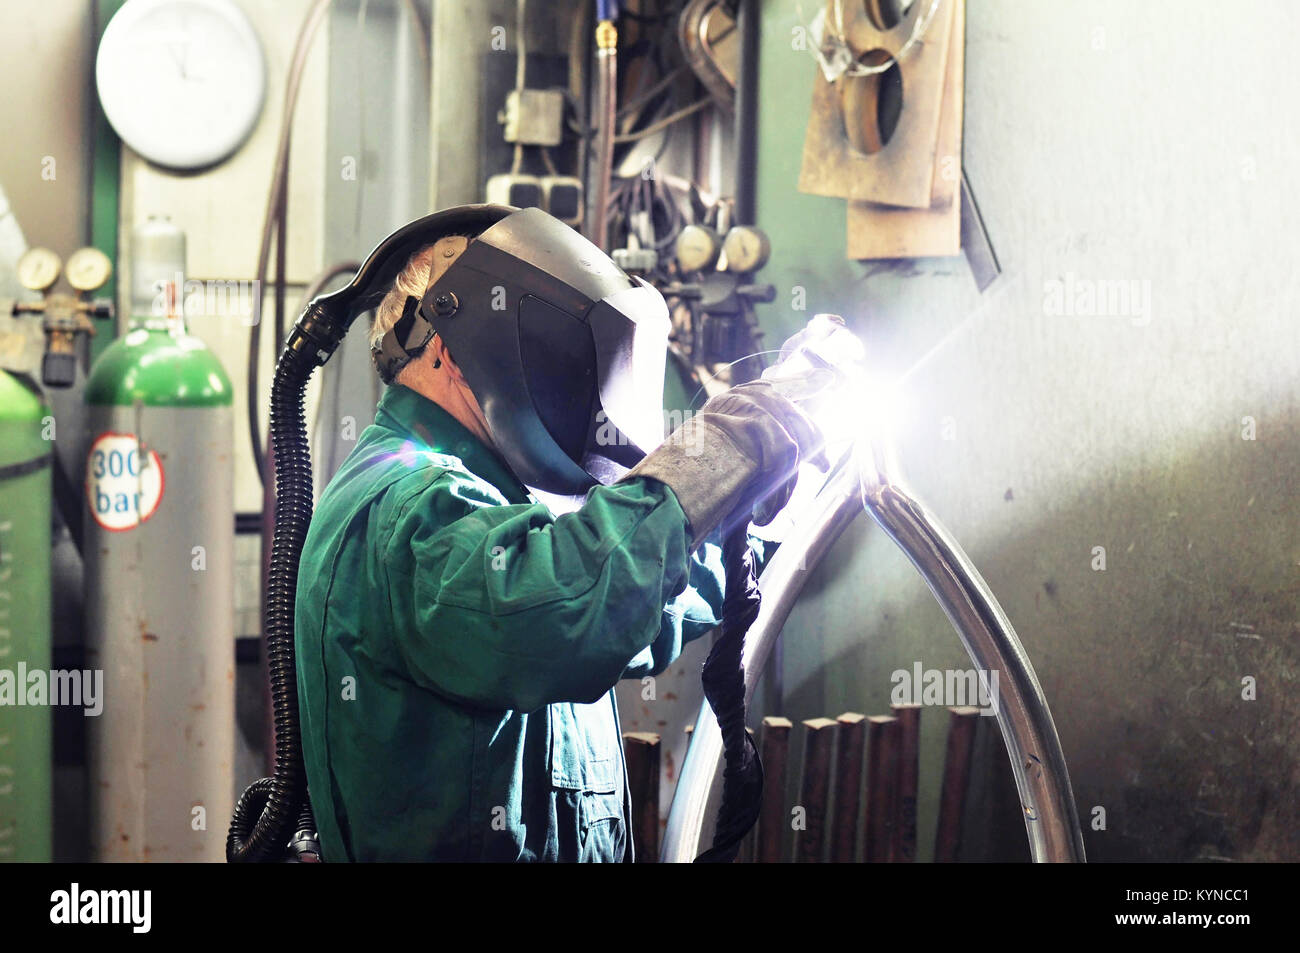 welder in an industrial company working on a piece of work - Stock Image